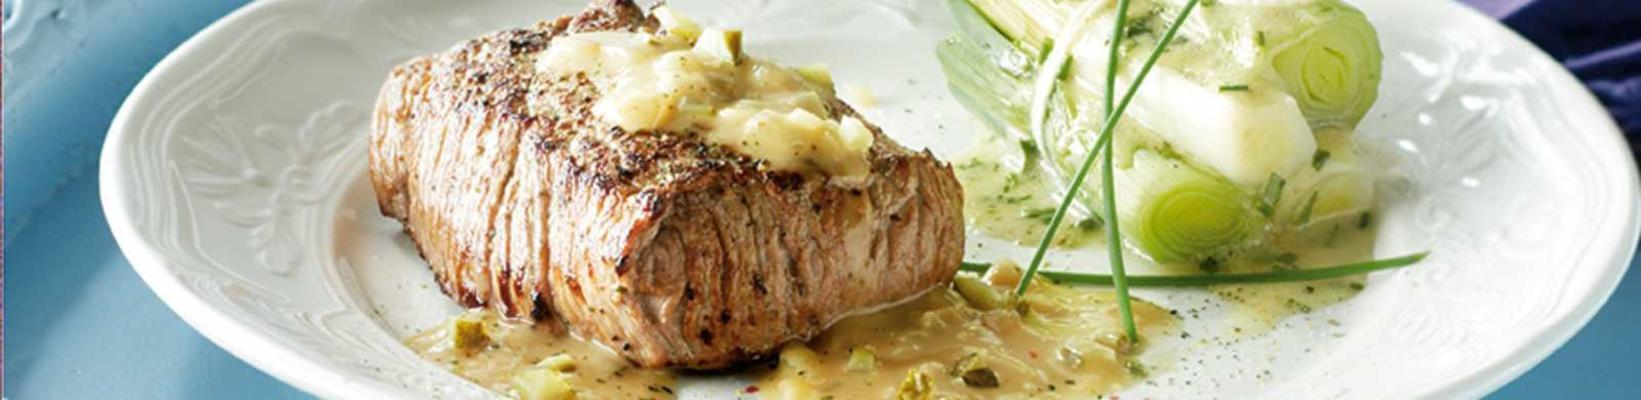 veal oyster with mustard sauce and leek